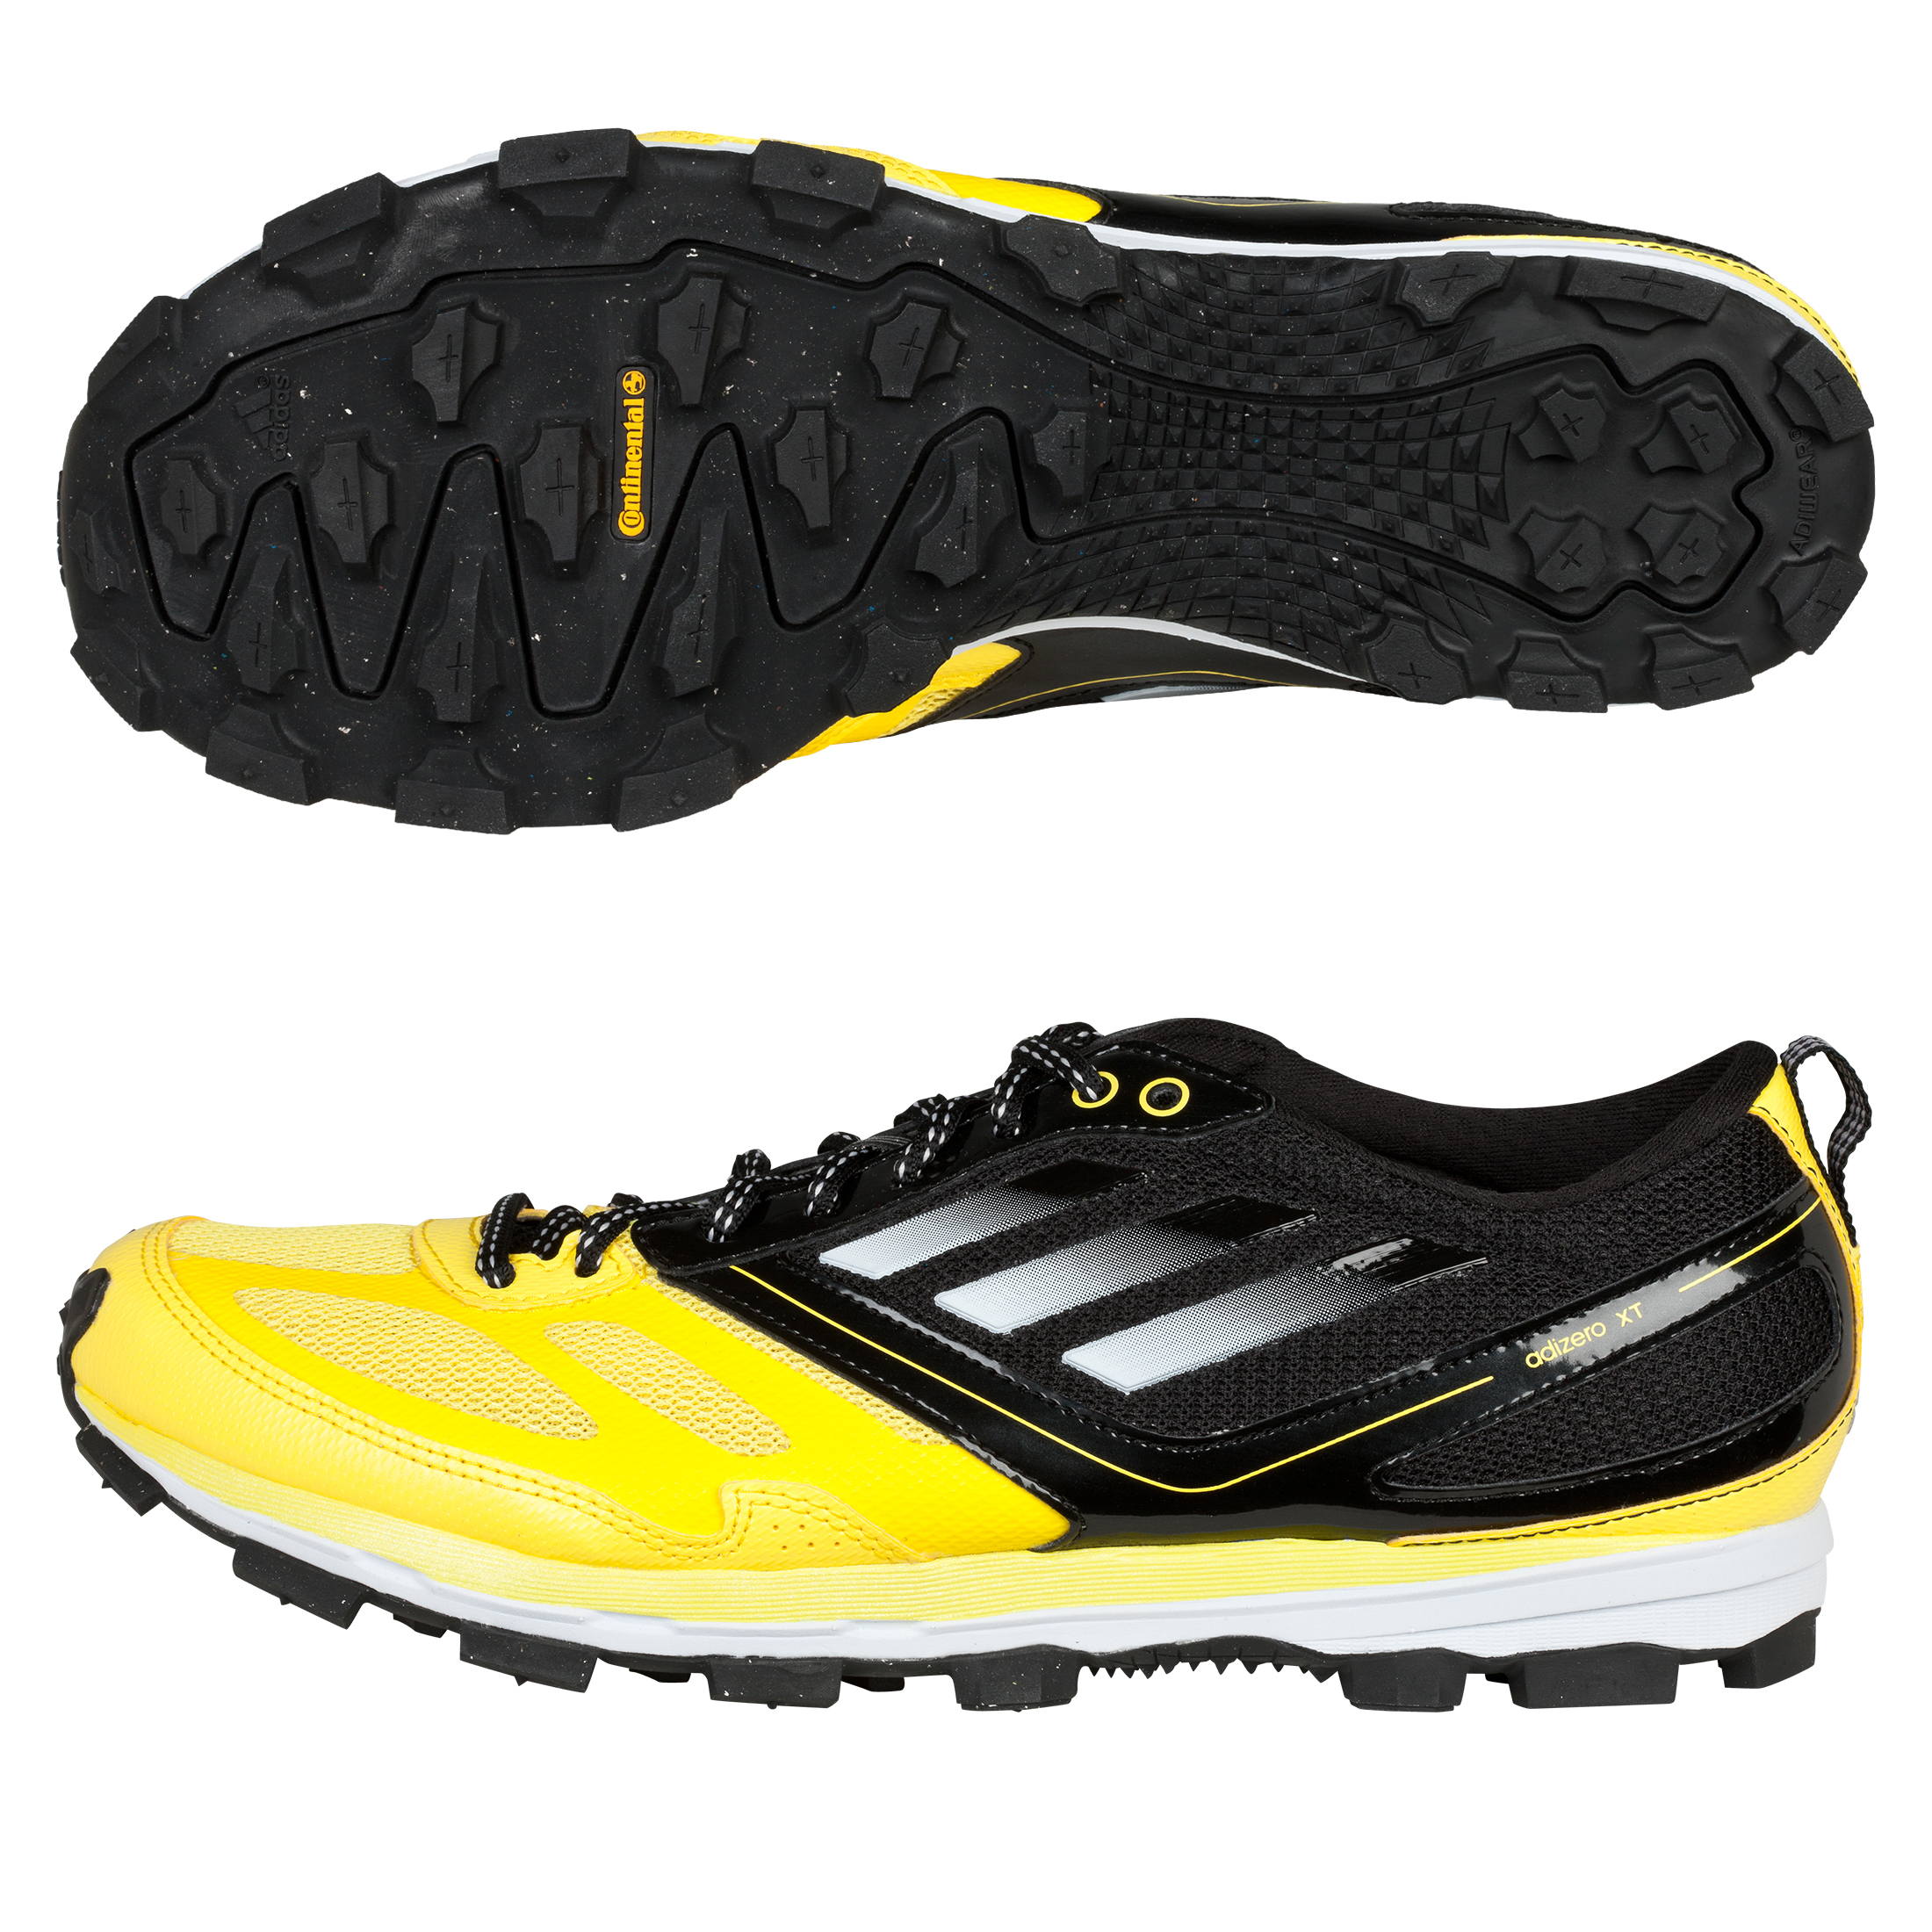 Adidas Adizero XT 4 Trainers - Vivid Yellow/White/Black